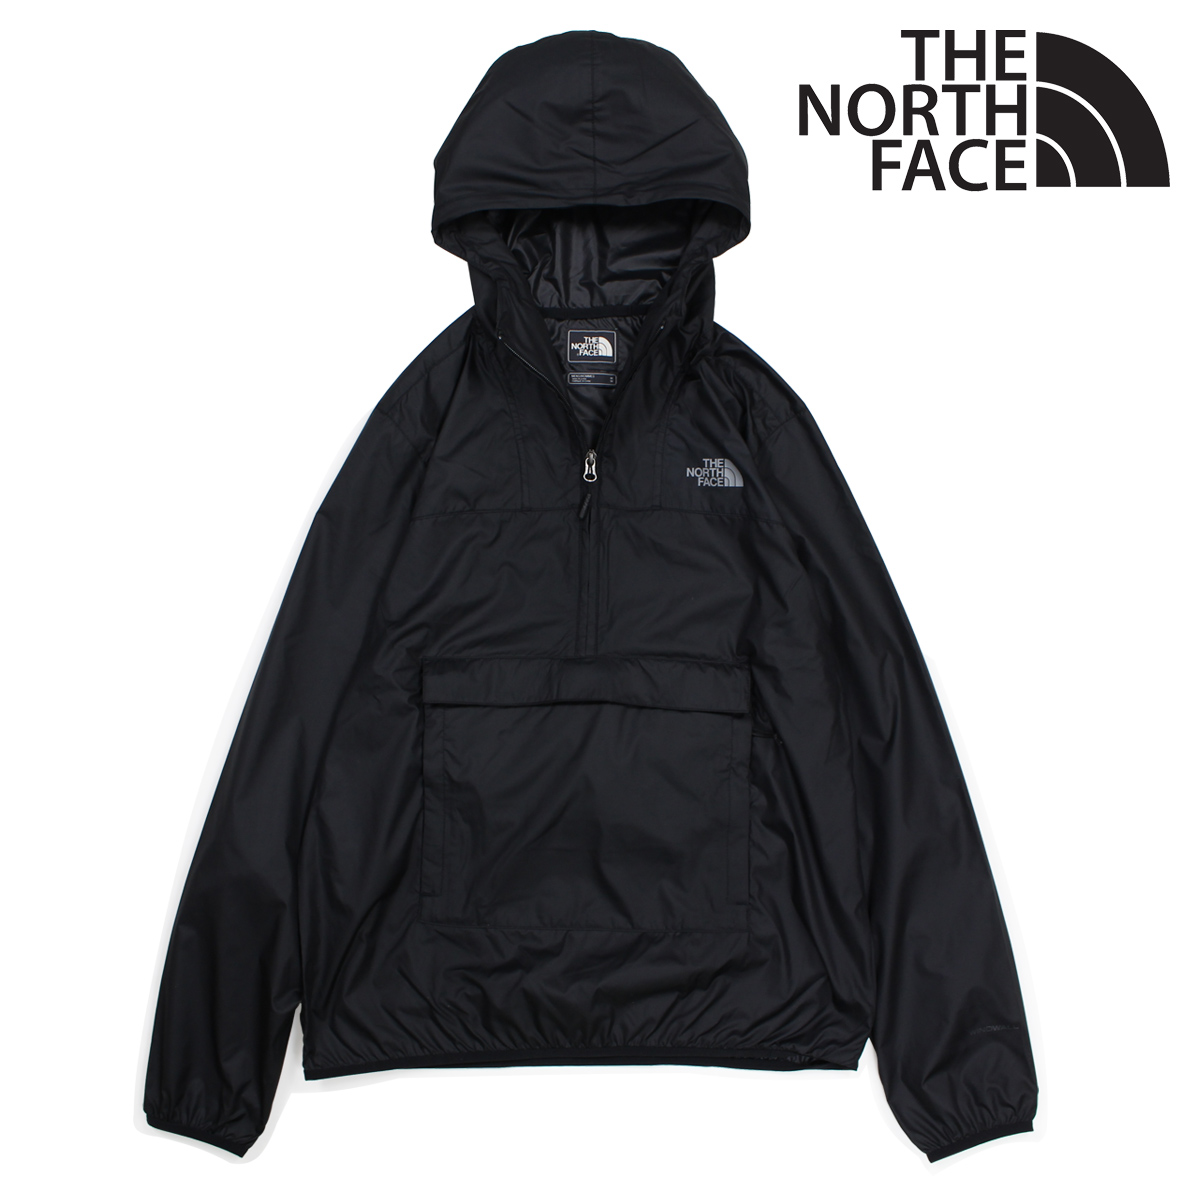 29afe433c THE NORTH FACE MENS FANORAK North Face jacket mountain parka men black  NF0A3FZL [3/7 Shinnyu load]